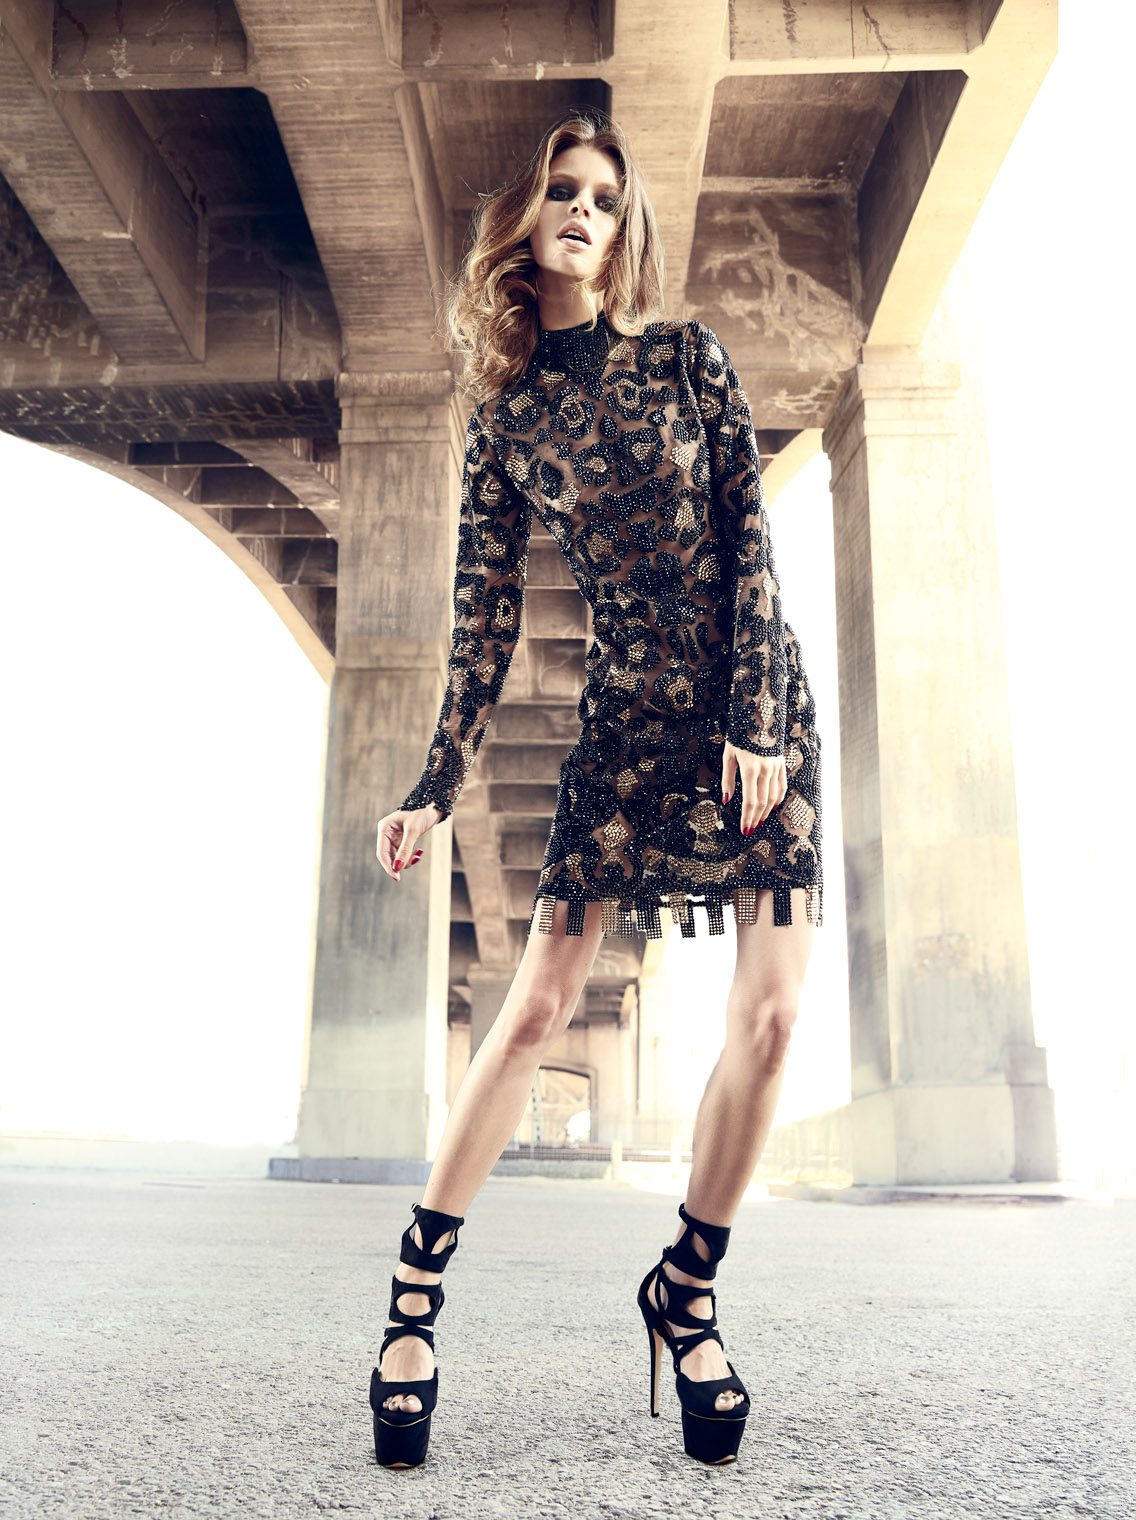 LA Fashion Photographer Robert Wilde - The Old Bridge